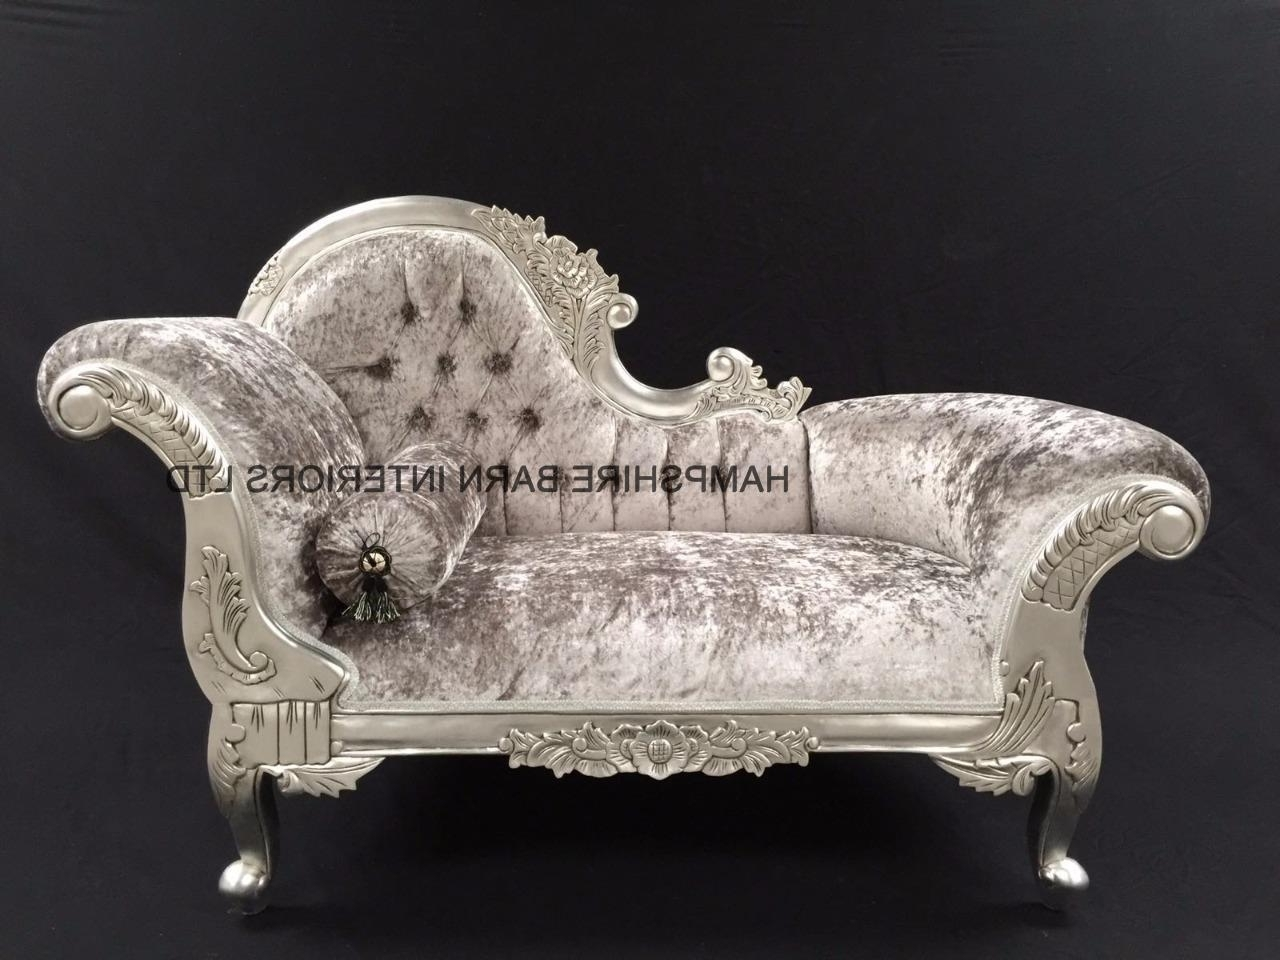 Widely Used Small Chaise Lounges In Elegant French Chaise Lounge With Chaise Lounge Small Kc Designs (View 9 of 15)